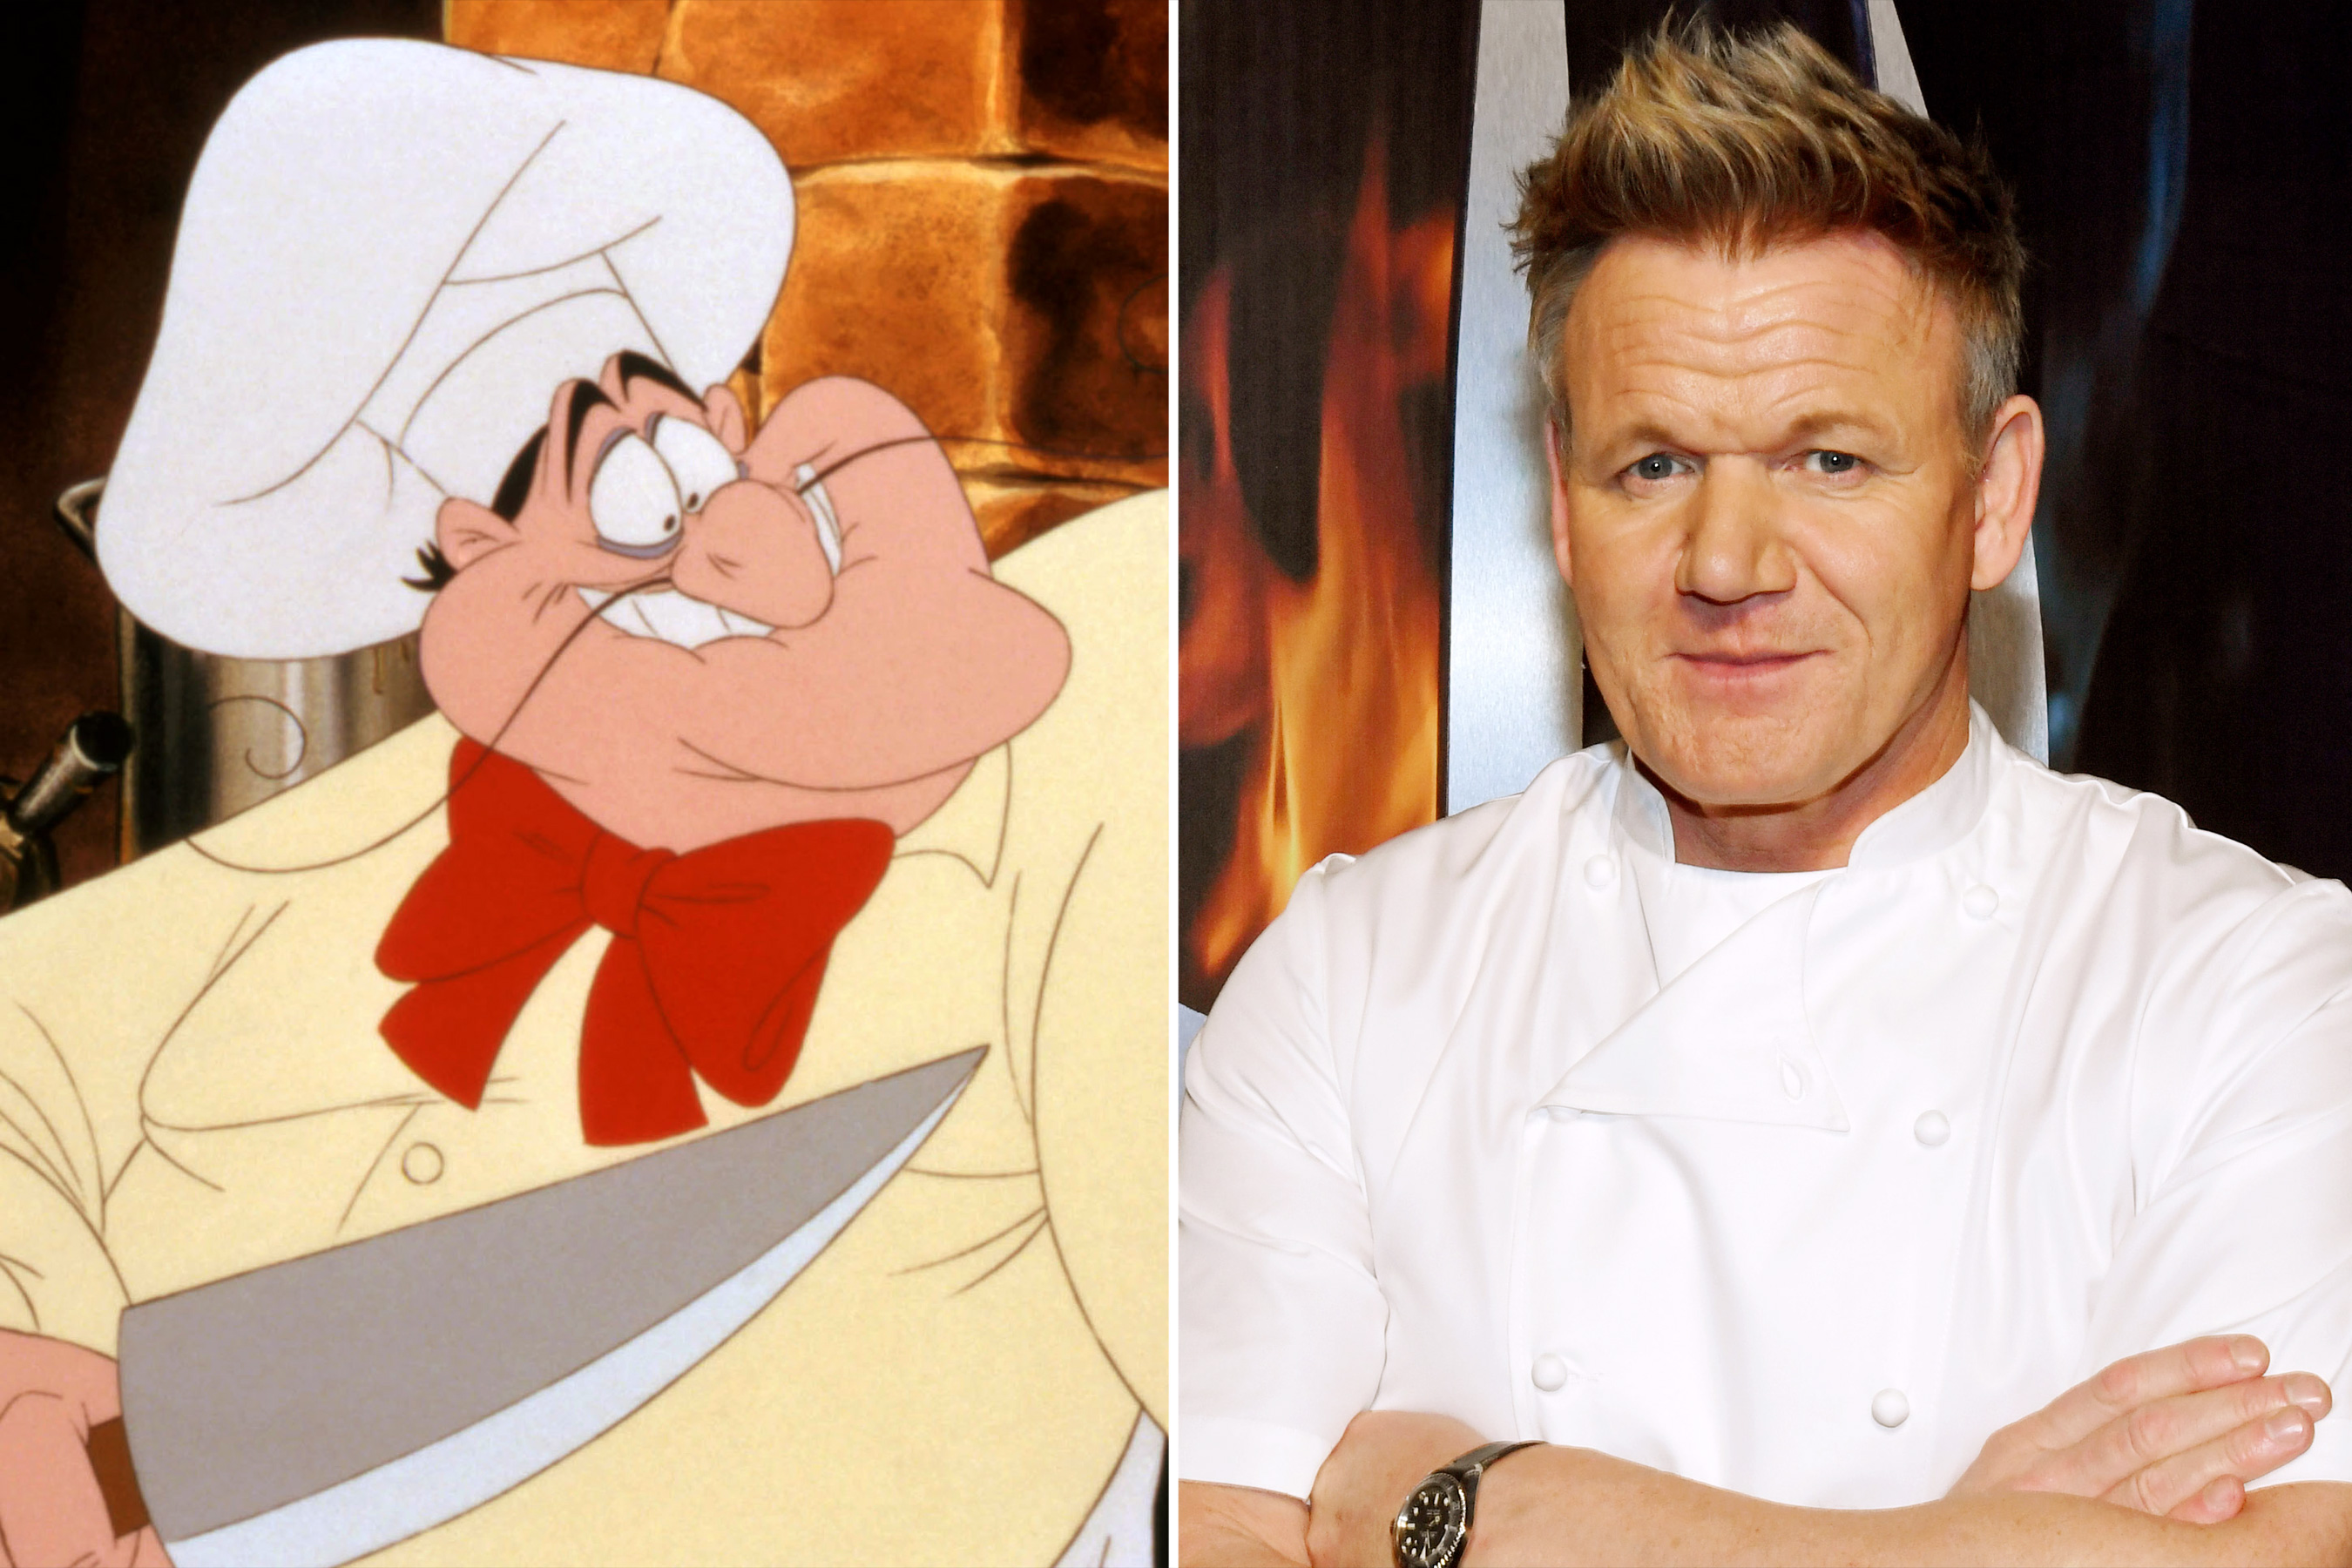 The Little Mermaid Chef Louis and Chef Gordon Ramsay